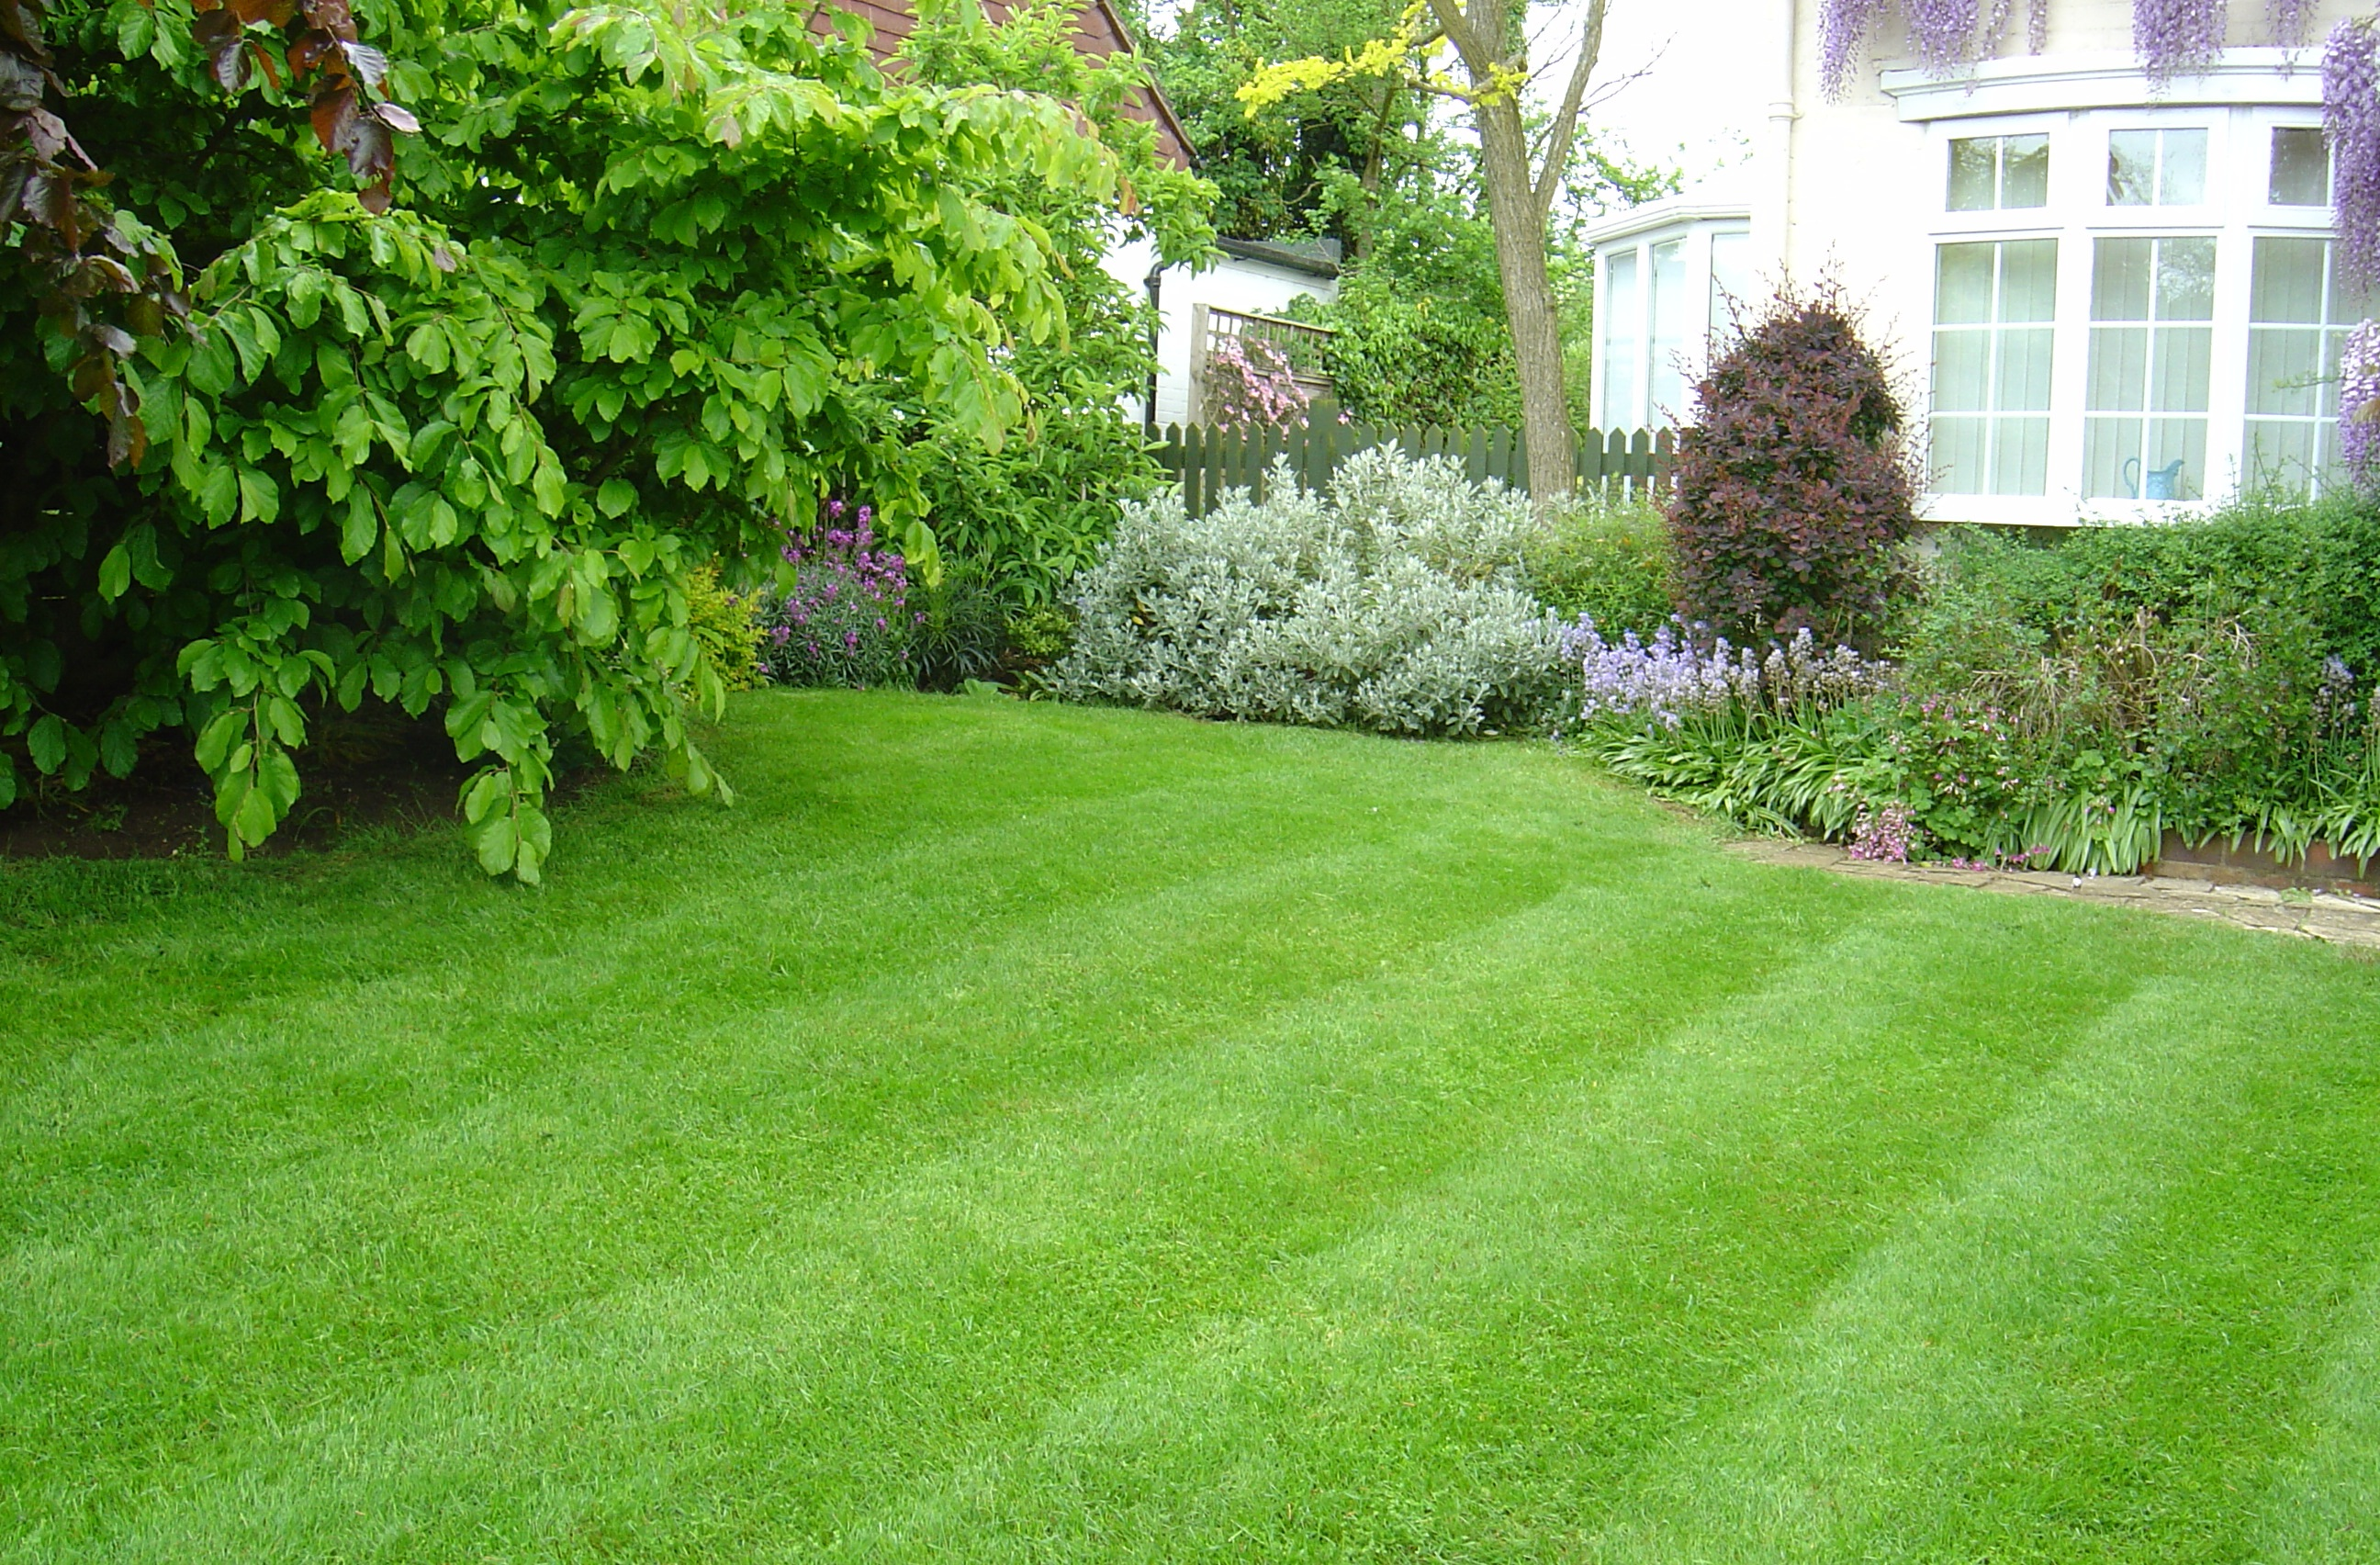 How to care for a lawn hirerush blog for Lawn and garden services